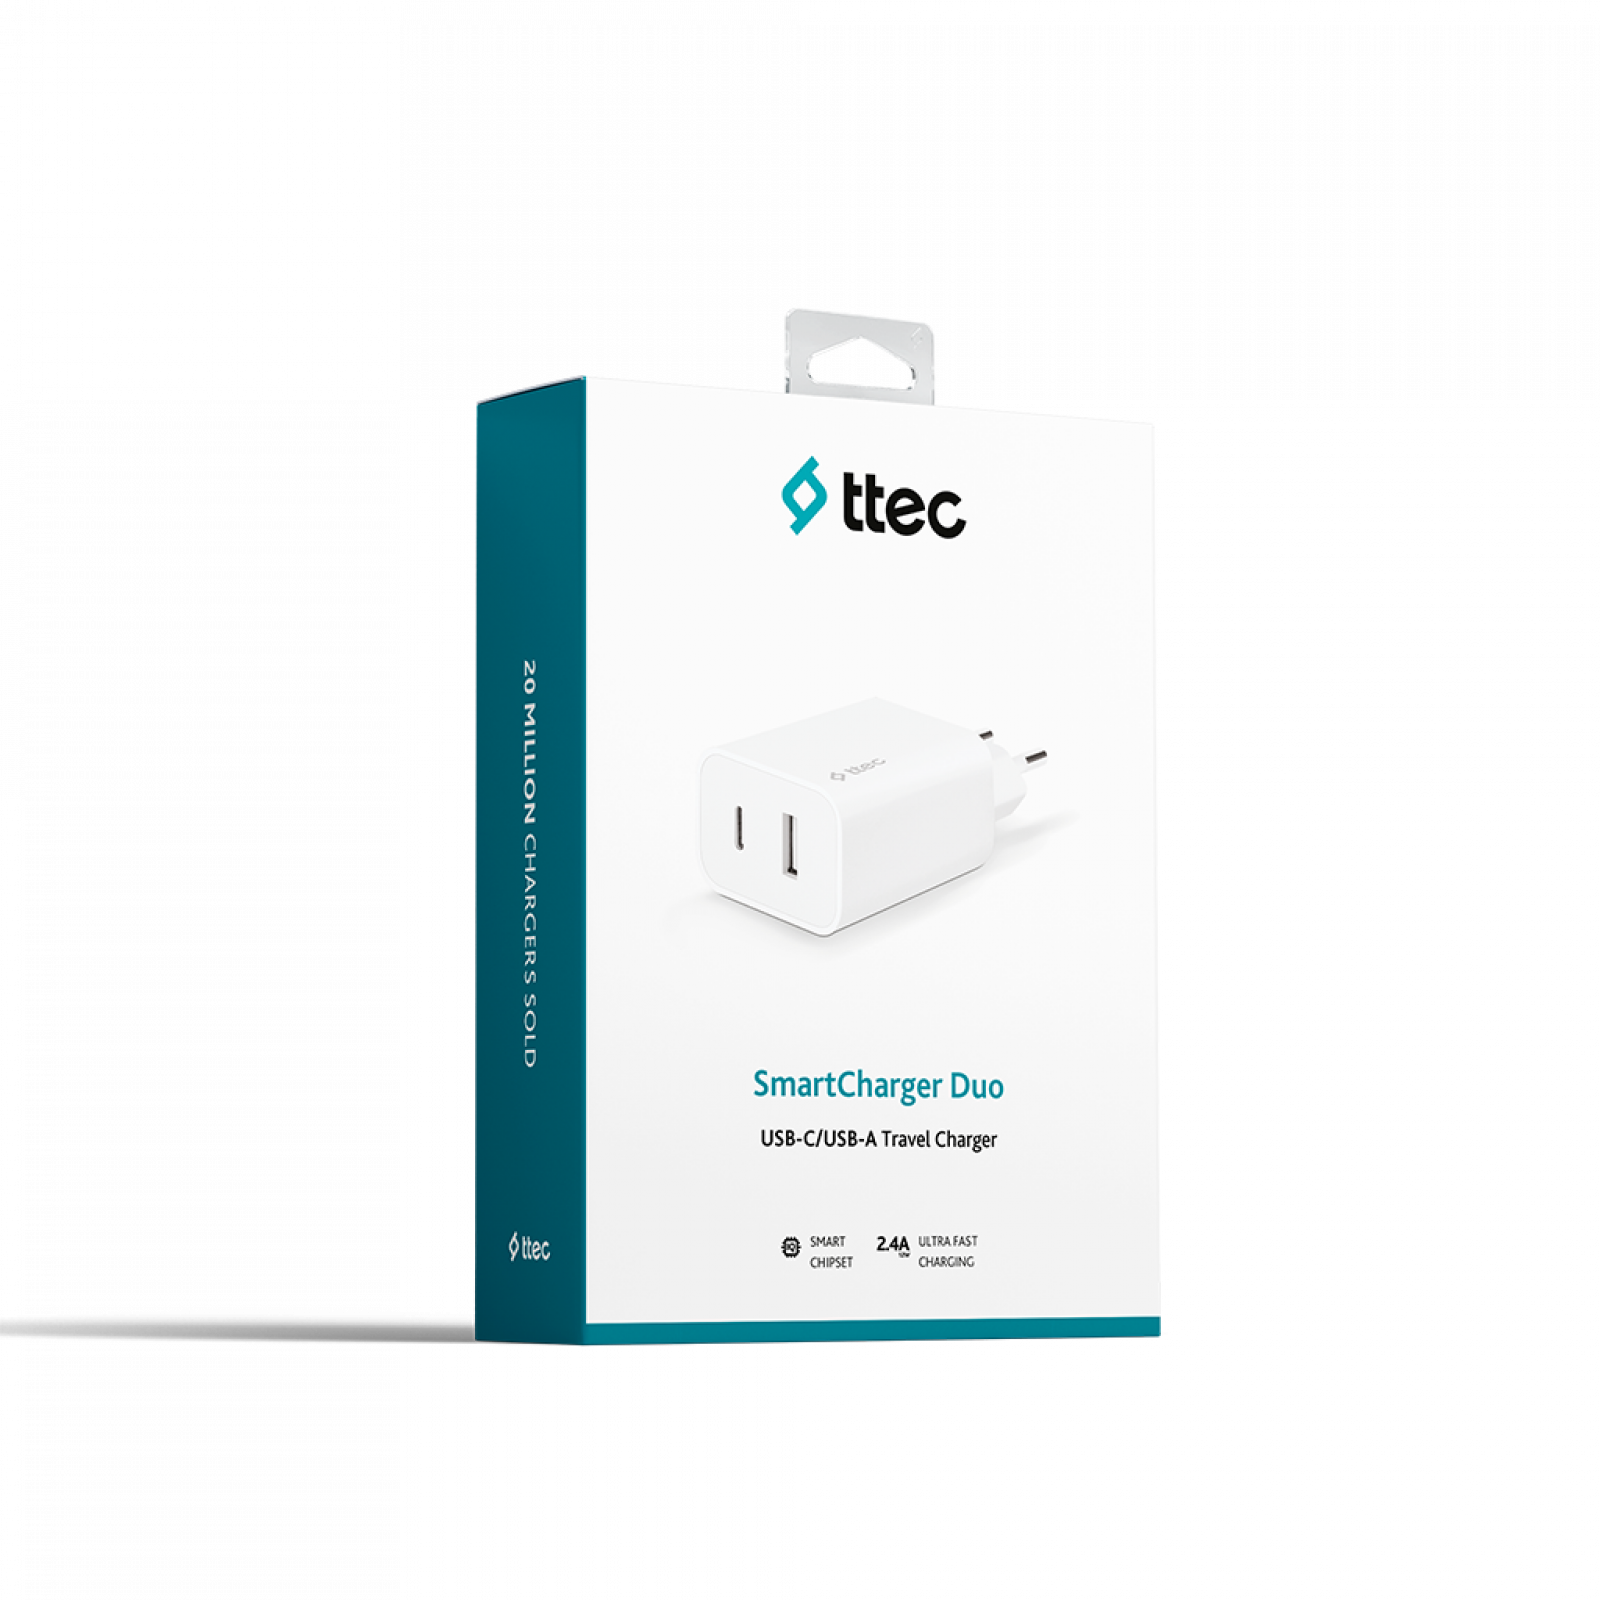 Адаптер 220V ttec SmartCharger Duo USB-C+USB-A Travel Charger 2.4 A - Бял